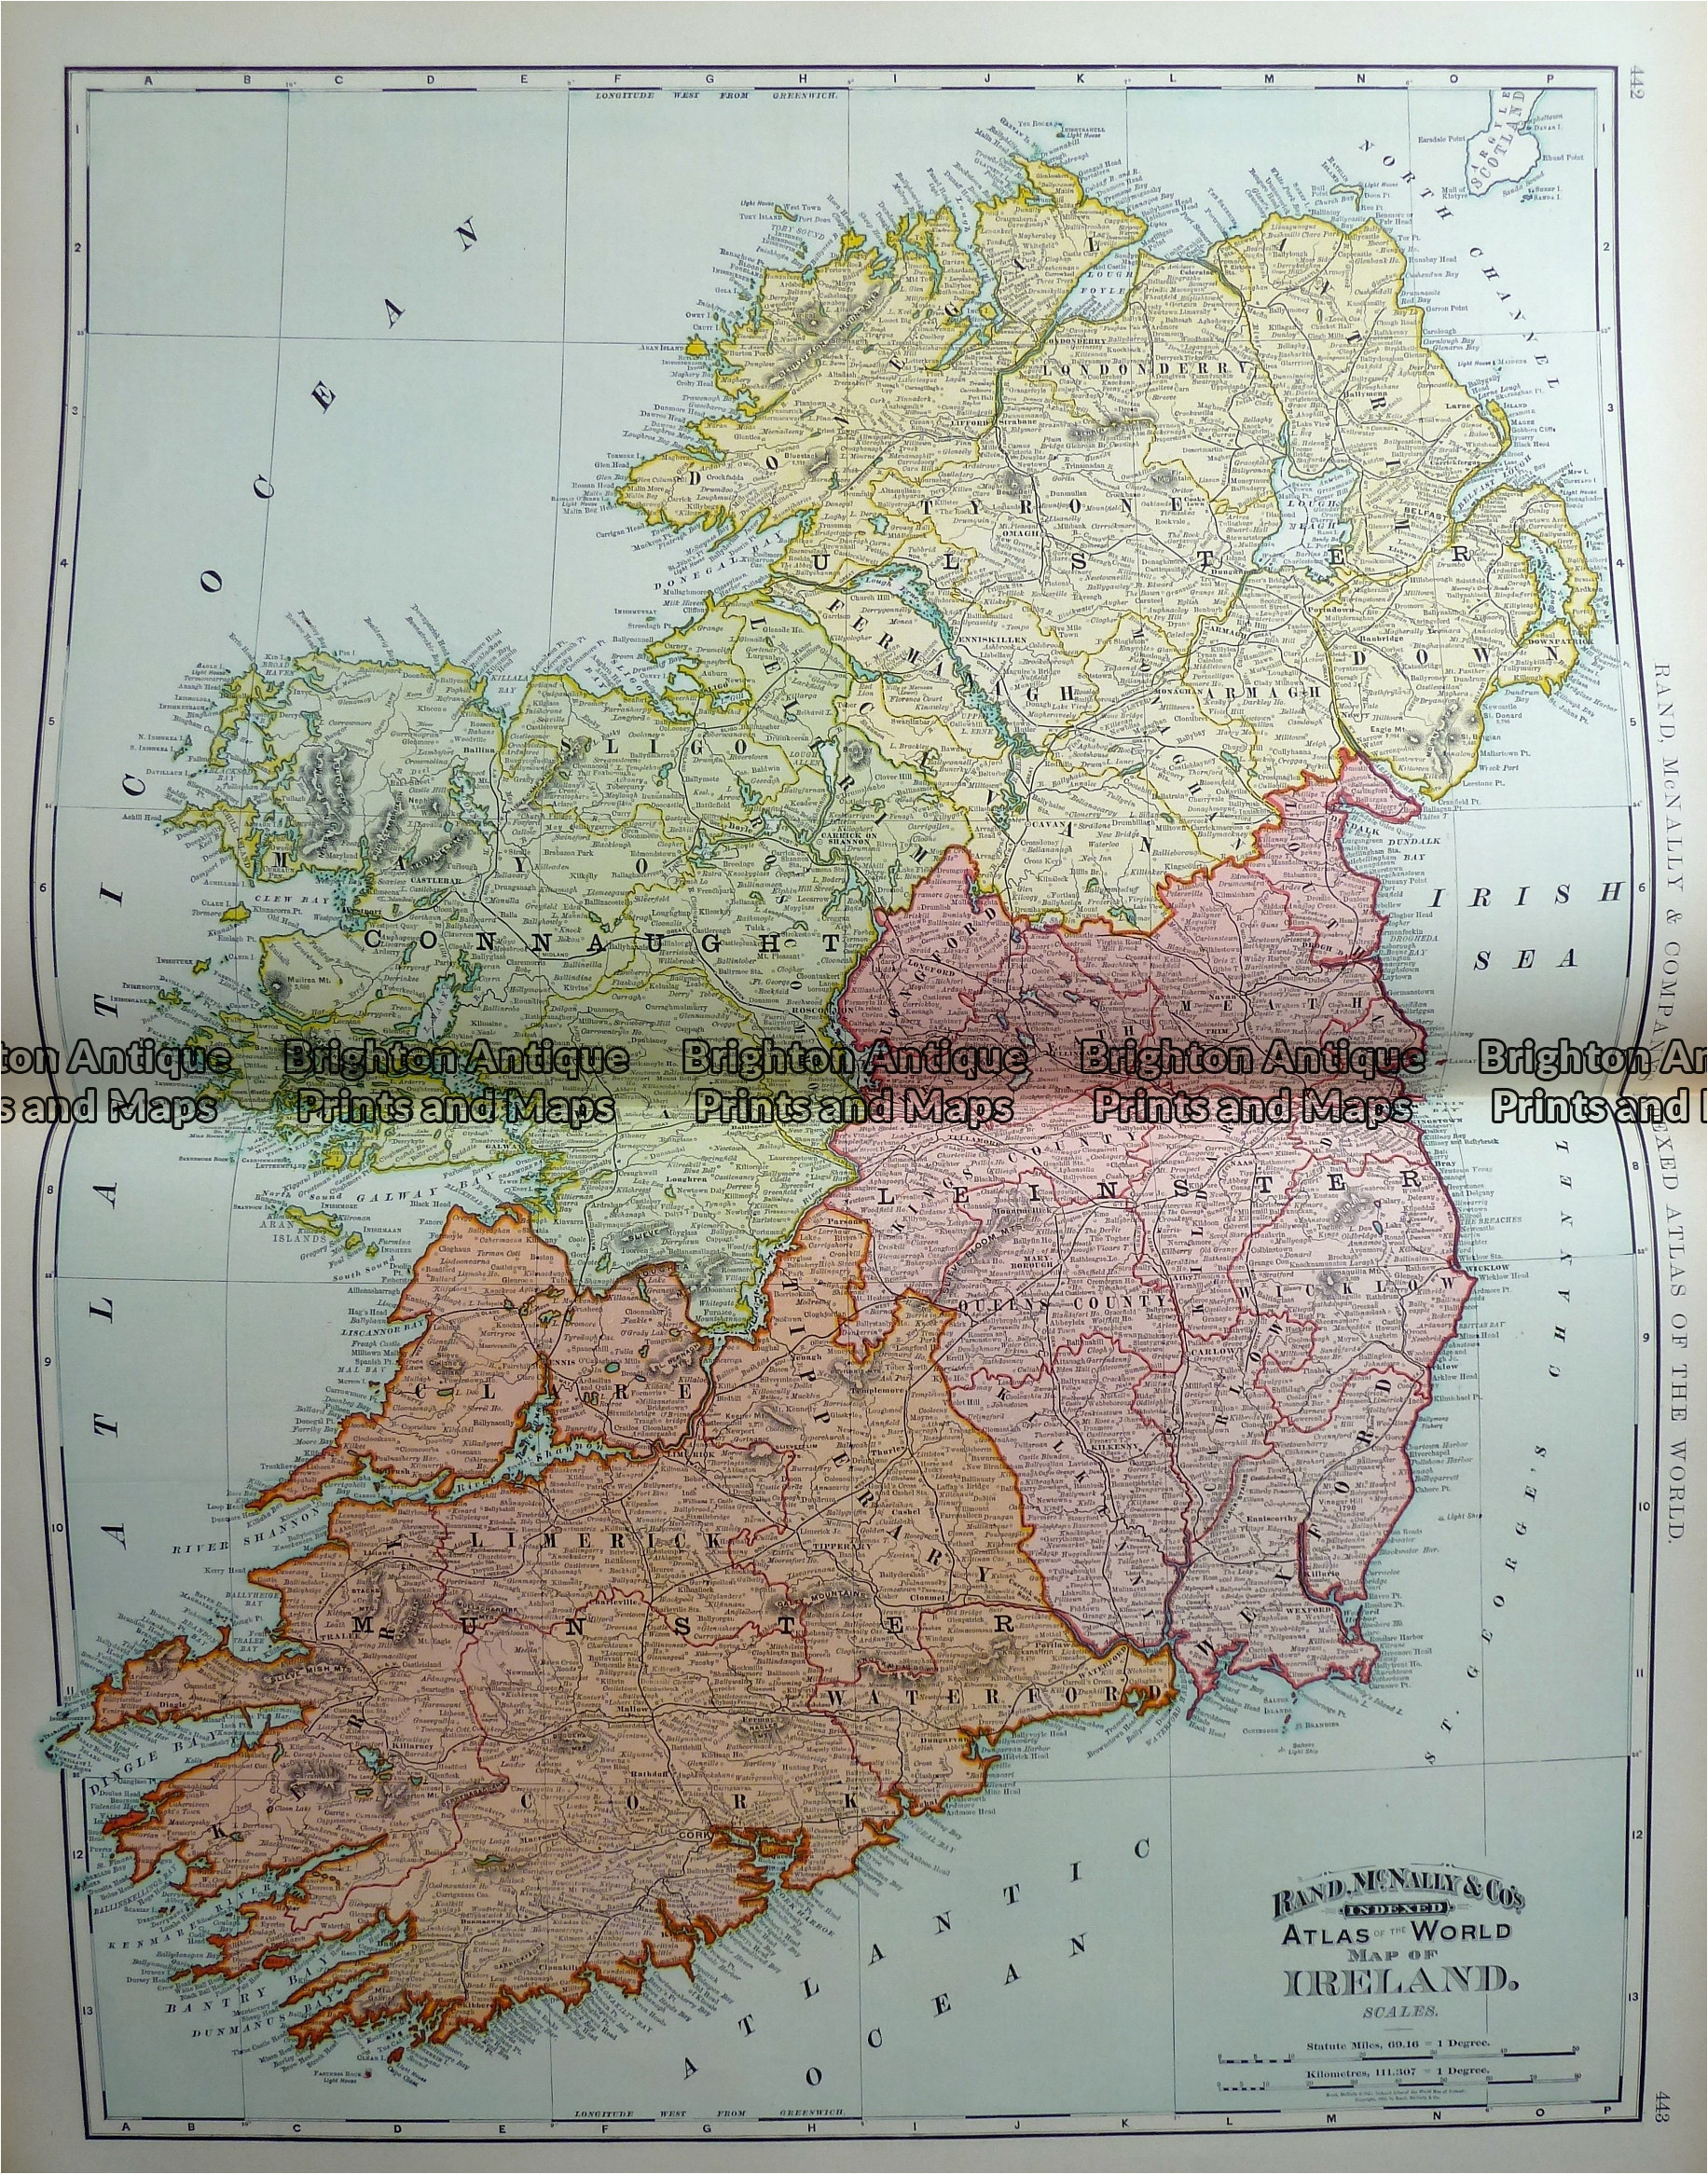 Antique Maps Of Ireland for Sale Antique Map 233 222 Ireland by Rand Mcnally C 1894 Brighton Antique Prints and Maps Shop Buy now